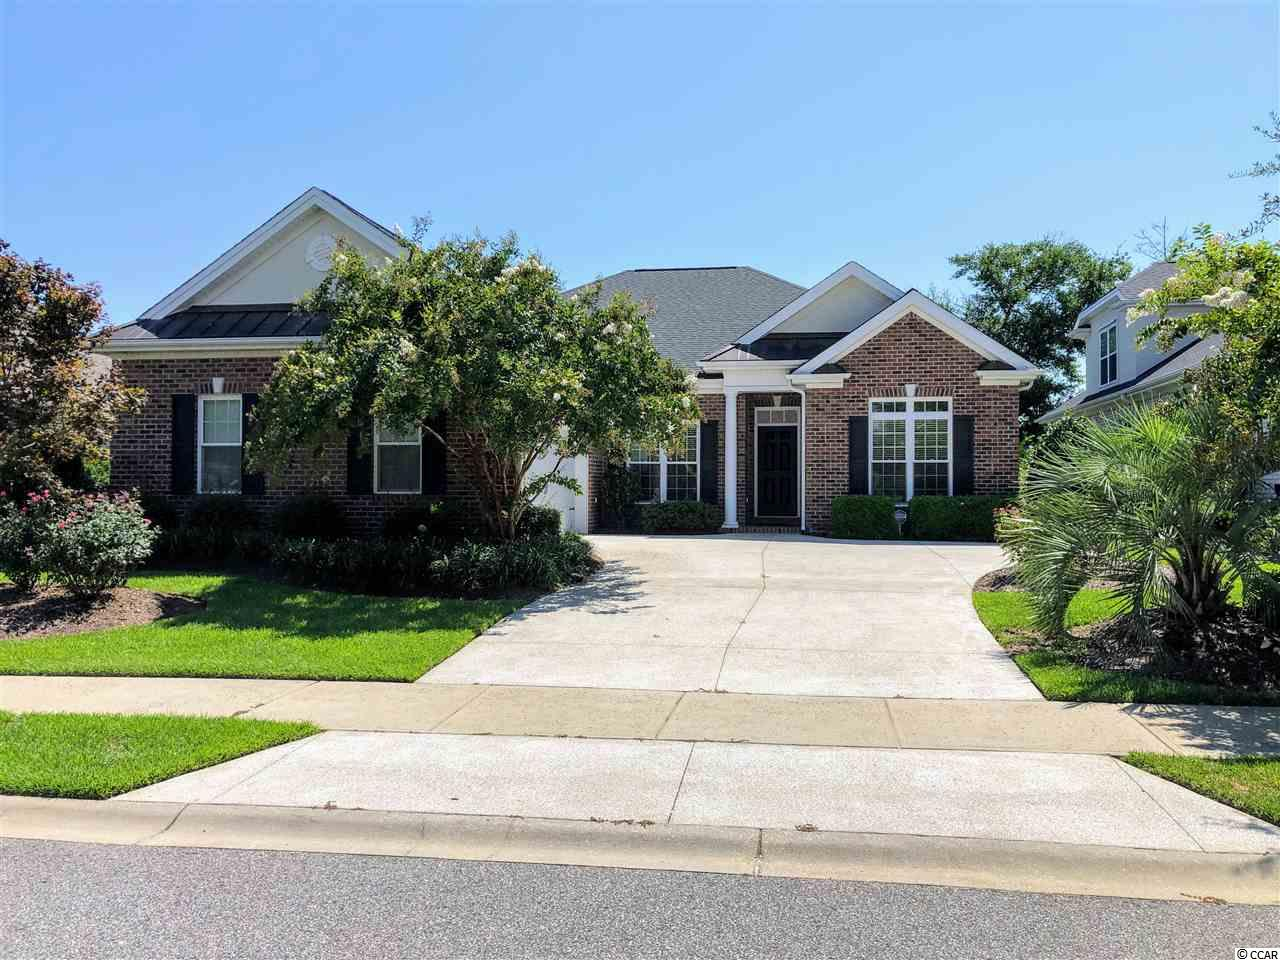 """This is a must see at 867 Marsala Drive, Cipriana Park at Grande Dunes.  Quick highlights: all brick exterior, most popular plan that has been added to, dead center of a beautiful lake, only used as a second home and Grande Dunes finest amenities!! More details?  Ok.  The Sabal offers 3 bedrooms, 2 full baths and a powder room.  The formal dining room is currently being used as a den.  The kitchen offers an abundance of cabinets and counter space, with a large breakfast area.  The open and bright floorpan was made even larger with a 2ft addition in depth across the entire plan AND an 18x10 sunroom, that looks out to the finest lake view available.  Distinctive """"wood look"""" tile through the living areas, extensive trim and moldings throughout and incredible coffered ceiling in the great room.  The owners suite is massive, with triple windows that look at the lake, large walk-in closet and beautiful bath, with custom tile was-in shower.   This is all located in one of the most desired neighborhoods in Myrtle Beach.  Steps to the private Ocean Club, Marina, tennis and Fitness Club.  Also, so convenient to shopping, dining and medical facilities, they are all actually within 2 blocks of home. Home is perfect, only used as a second home, possible it has not been slept in 300 nights.  A must see."""